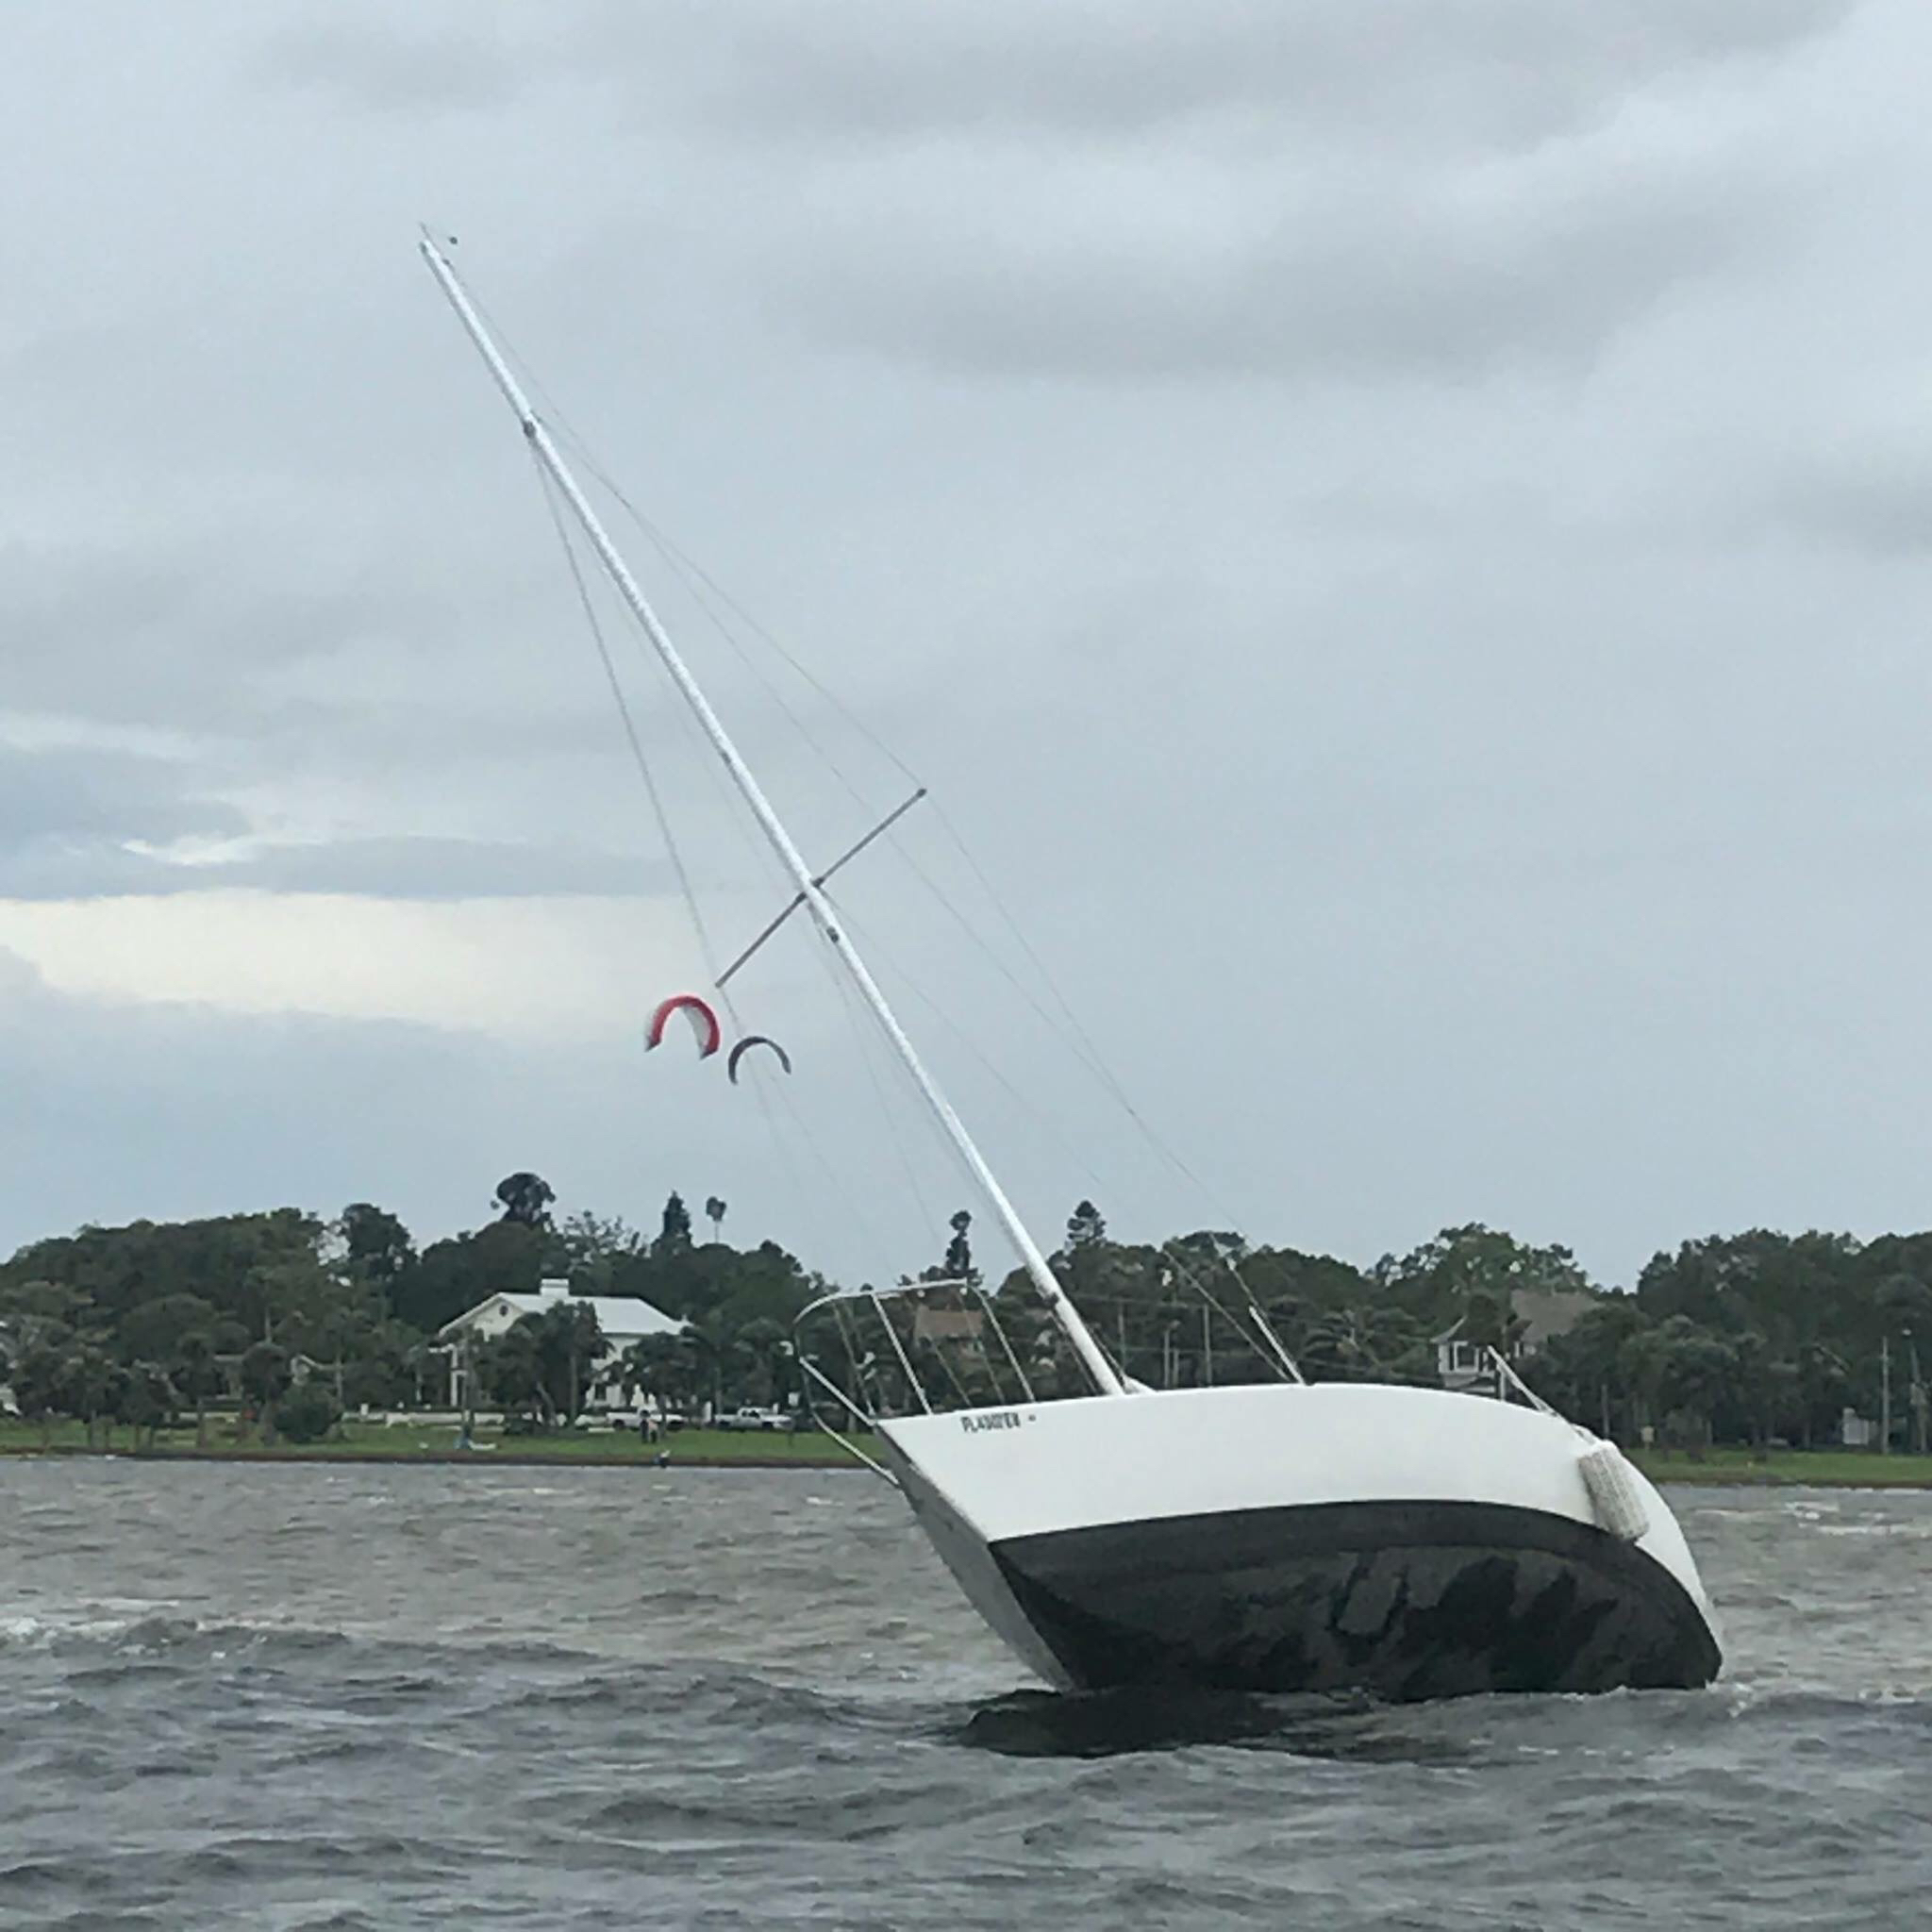 Waterfront staff rescue stranded sailboat